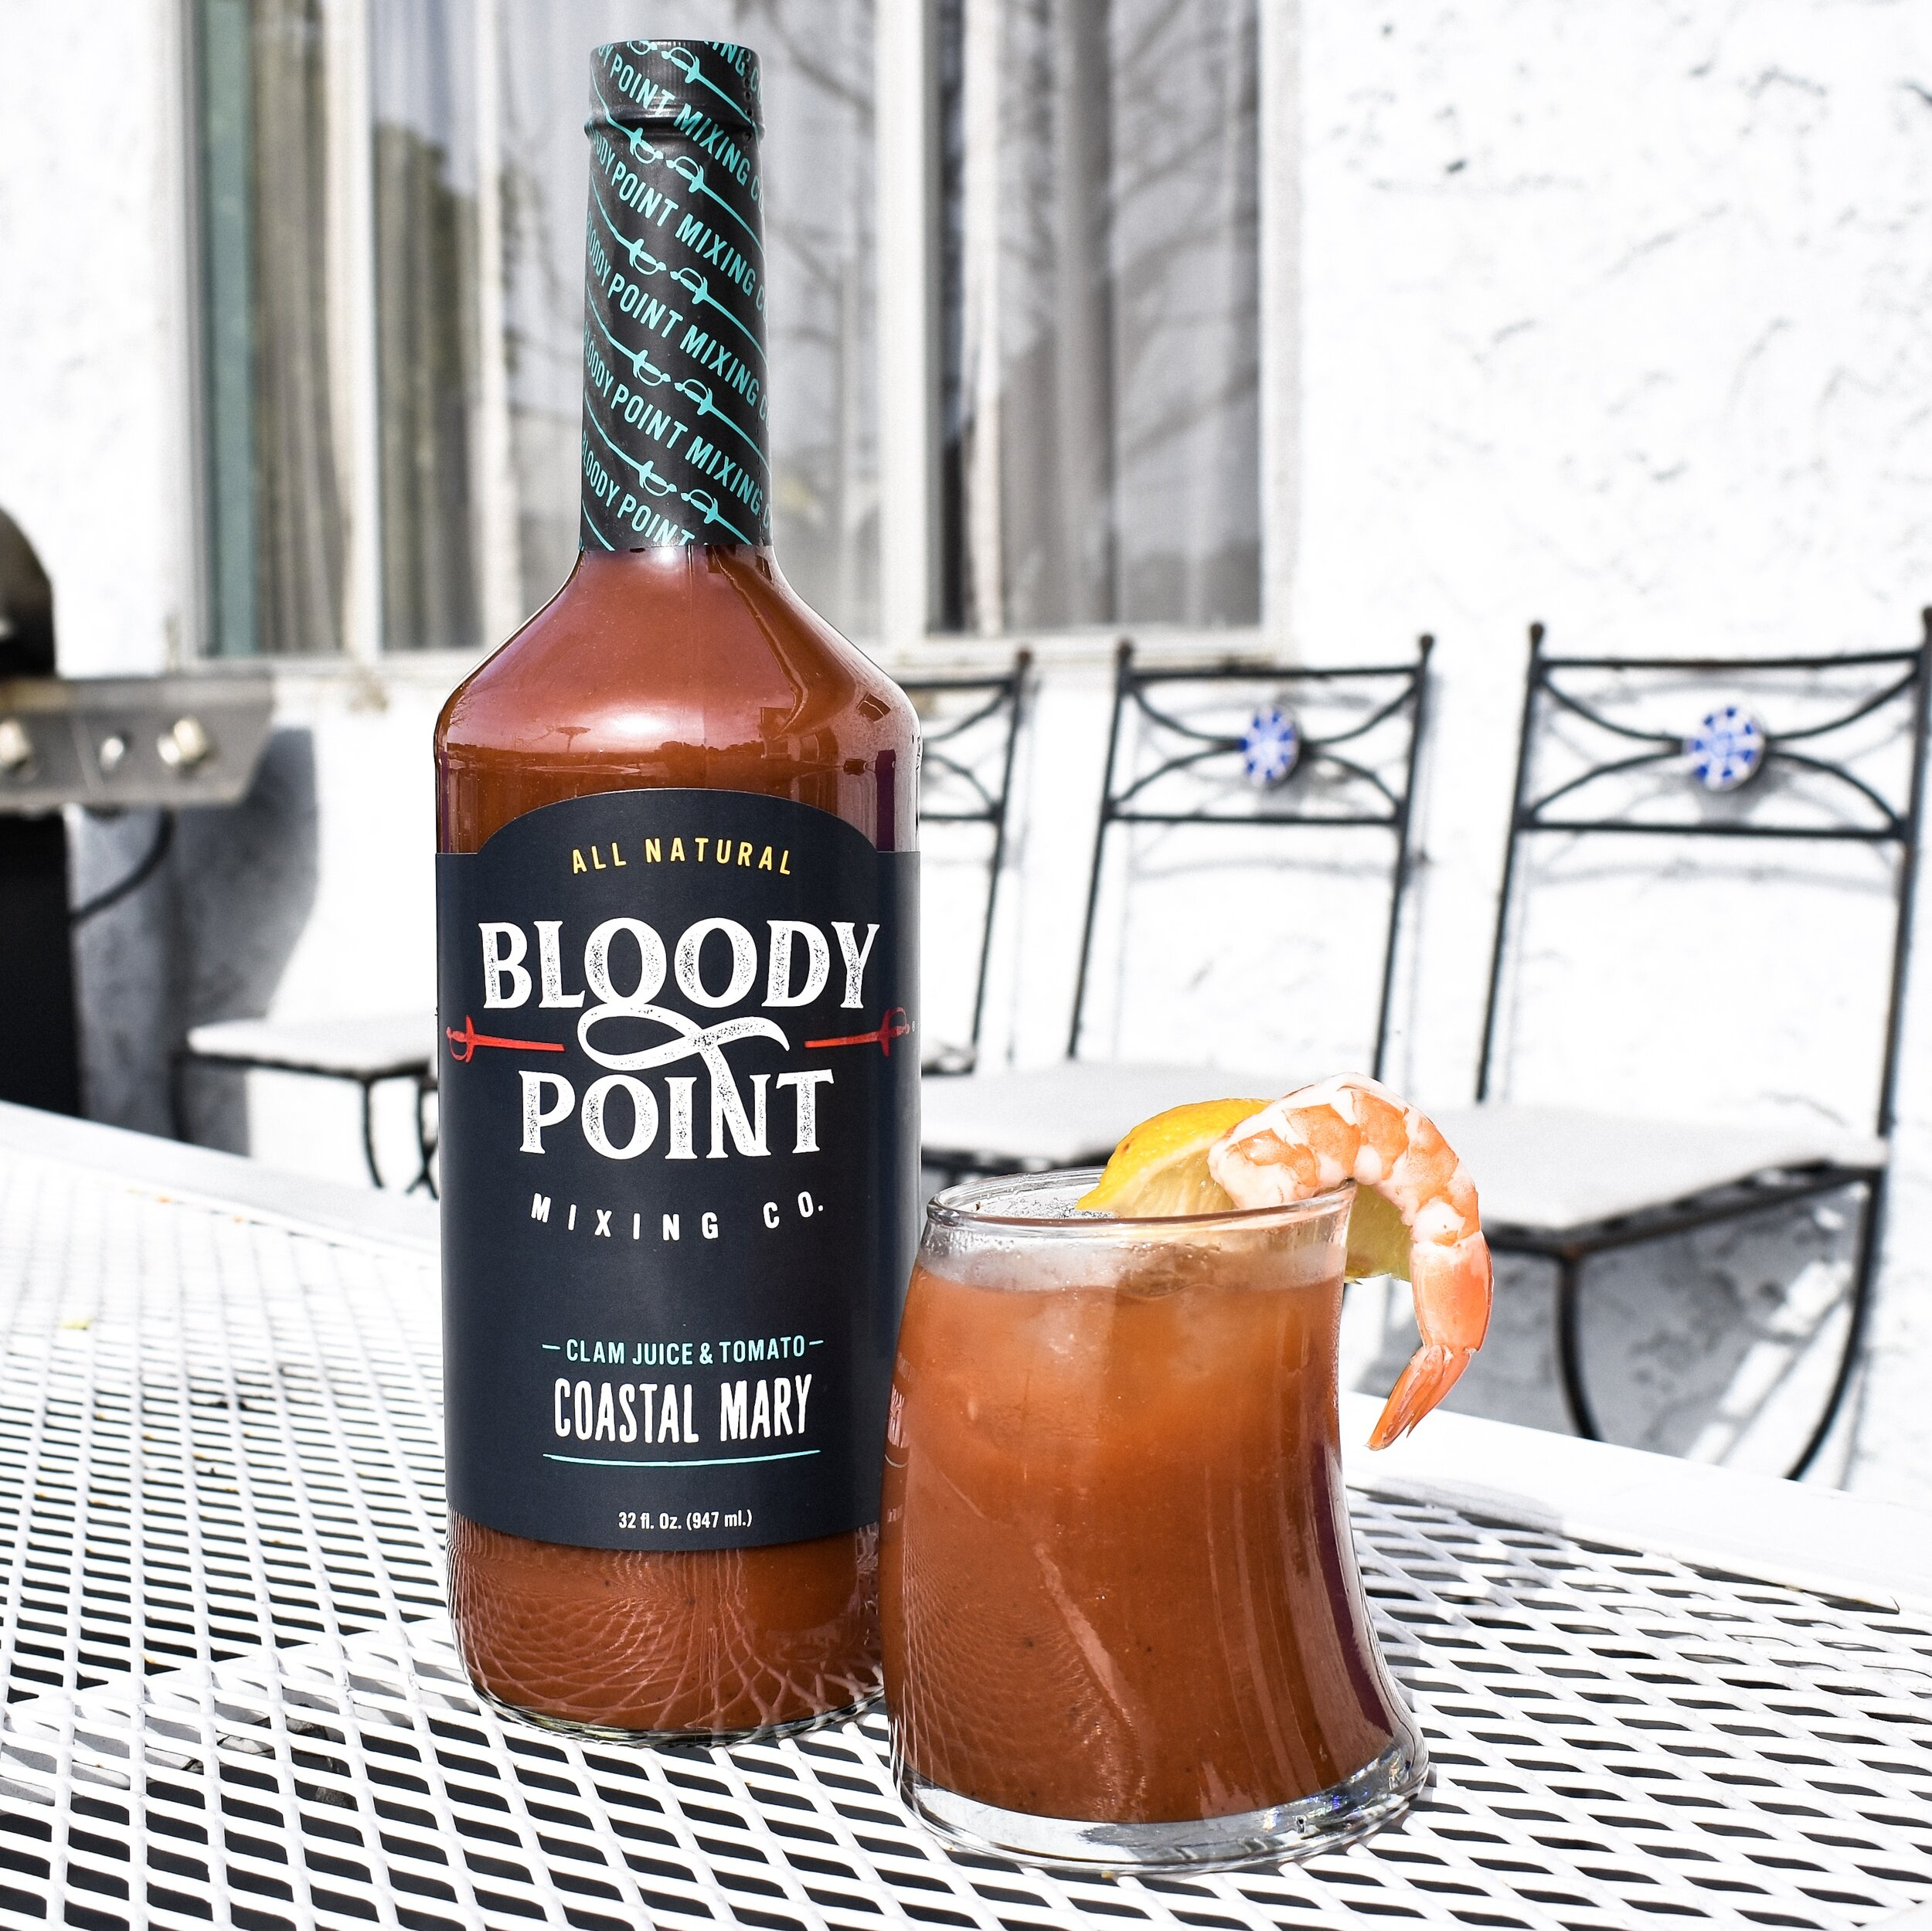 bloody point mixing co refreshing gin bloody mary recipe bloody mary obsessed 4.jpg